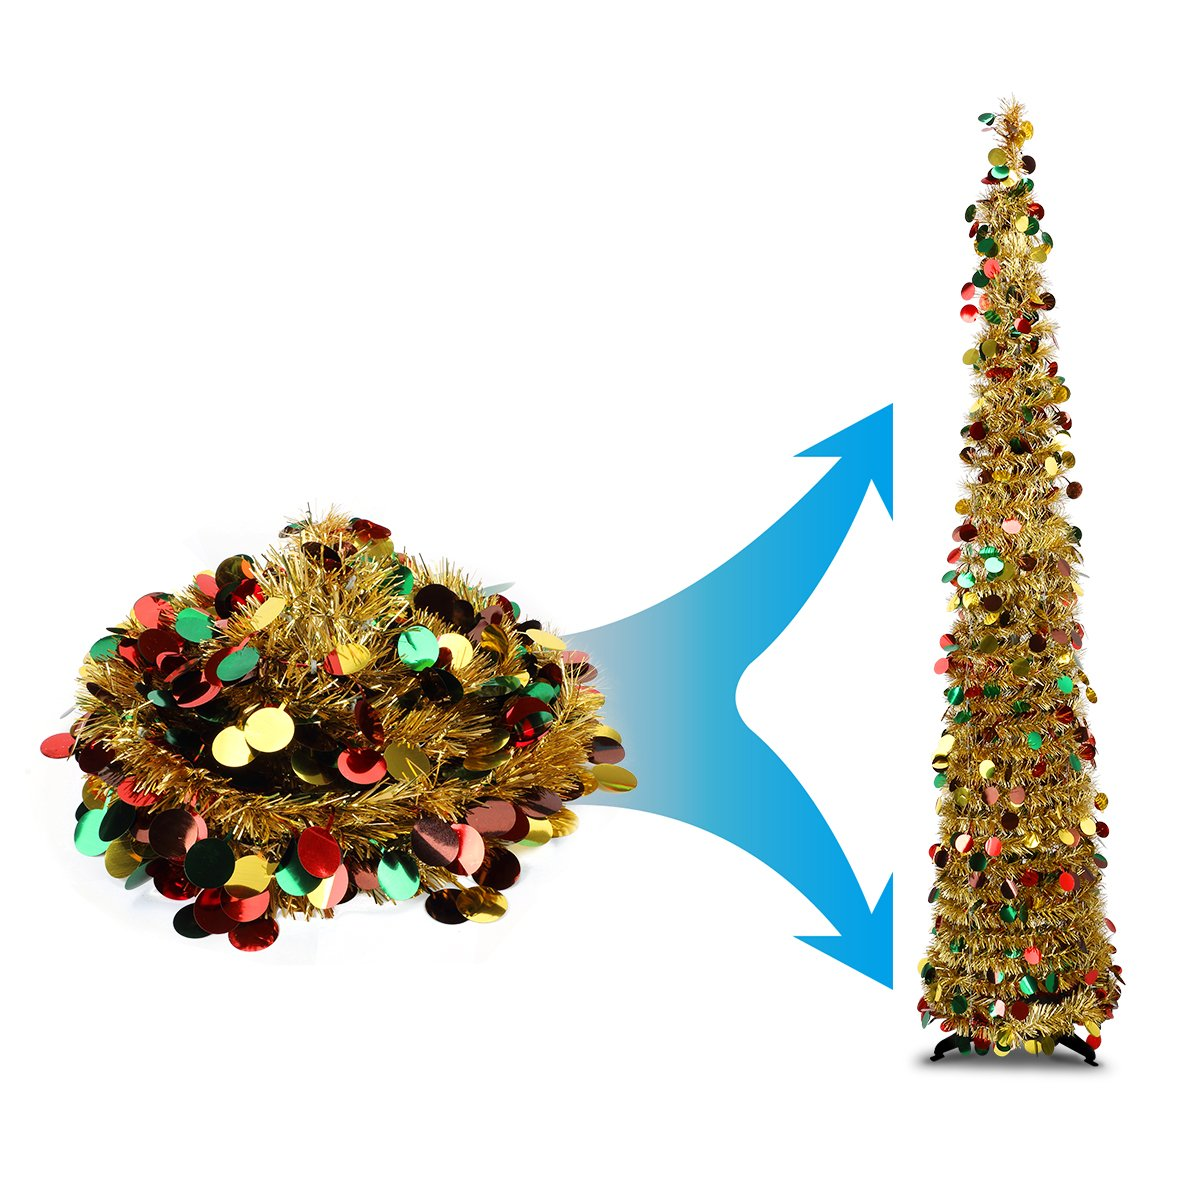 Collapsible Artificial Christmas Trees: 5 Foot Gold Multicolored Pop-up Collapsible Tinsel Pencil